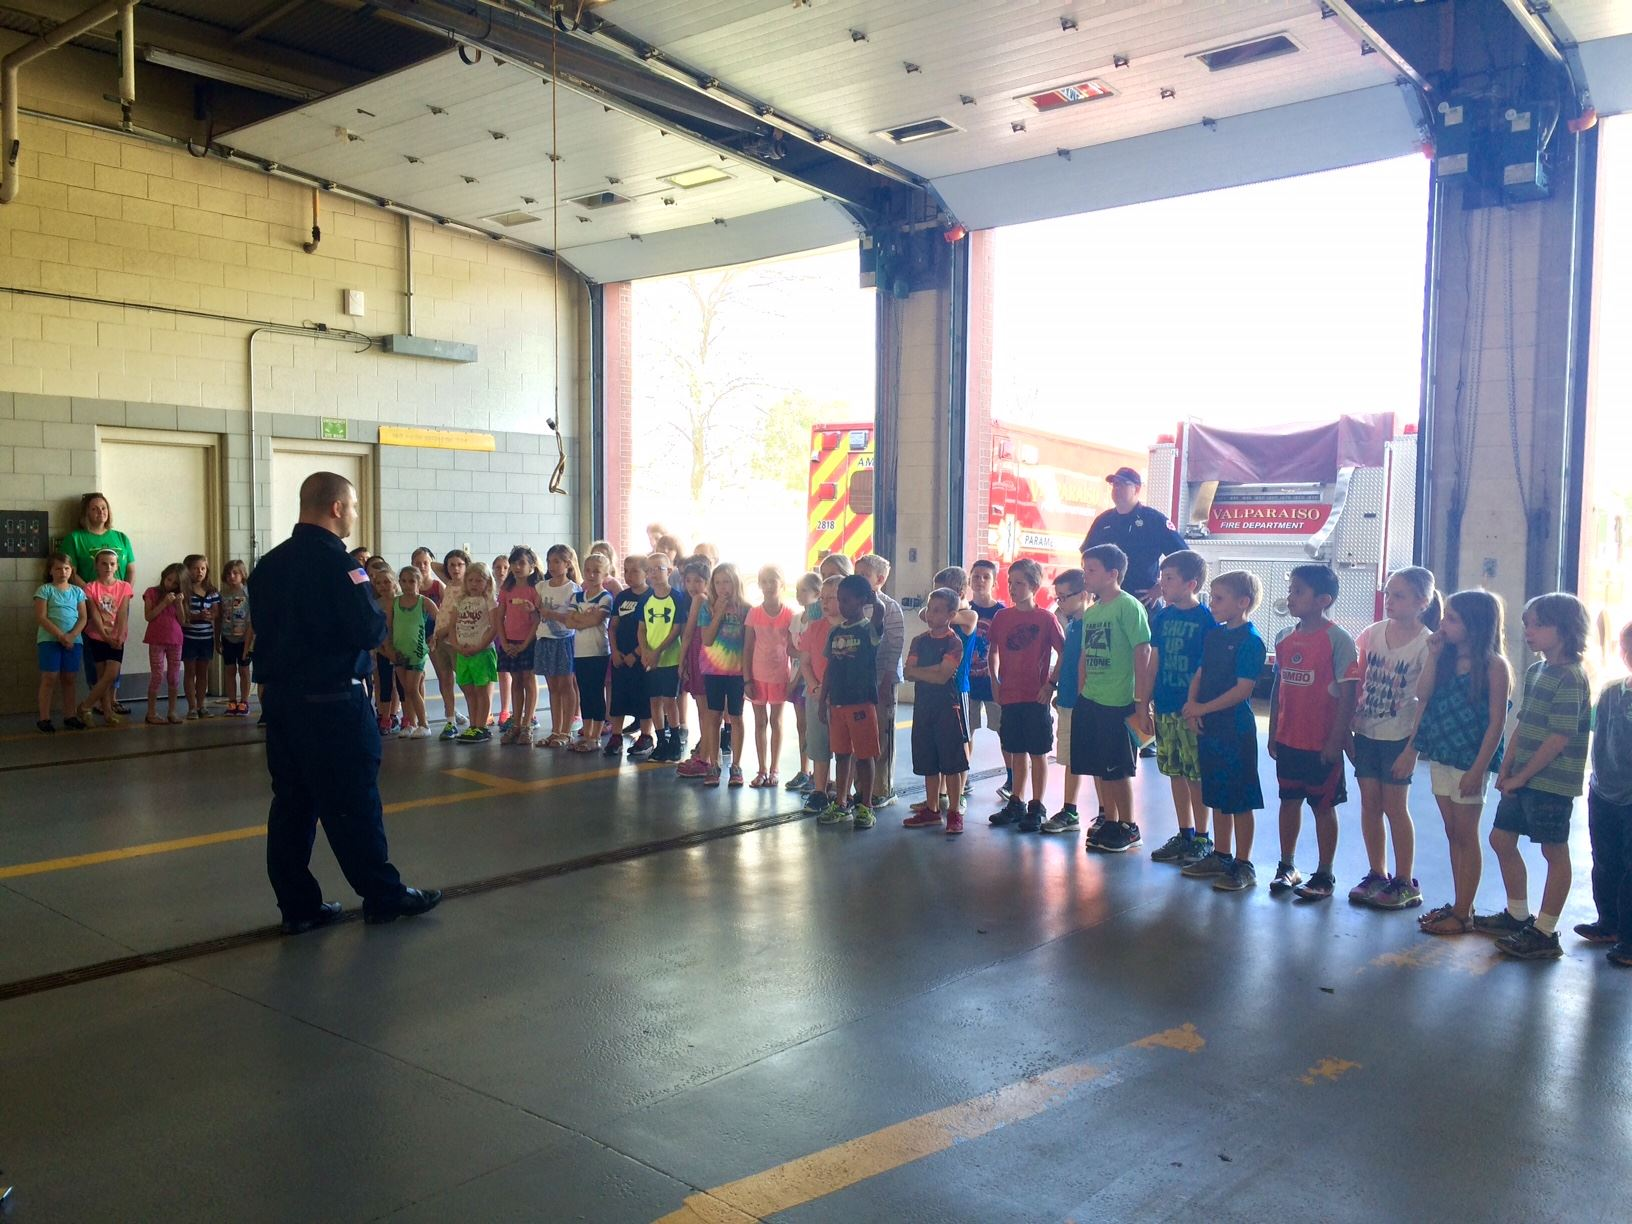 Fire Prevention & Education with Station Tour